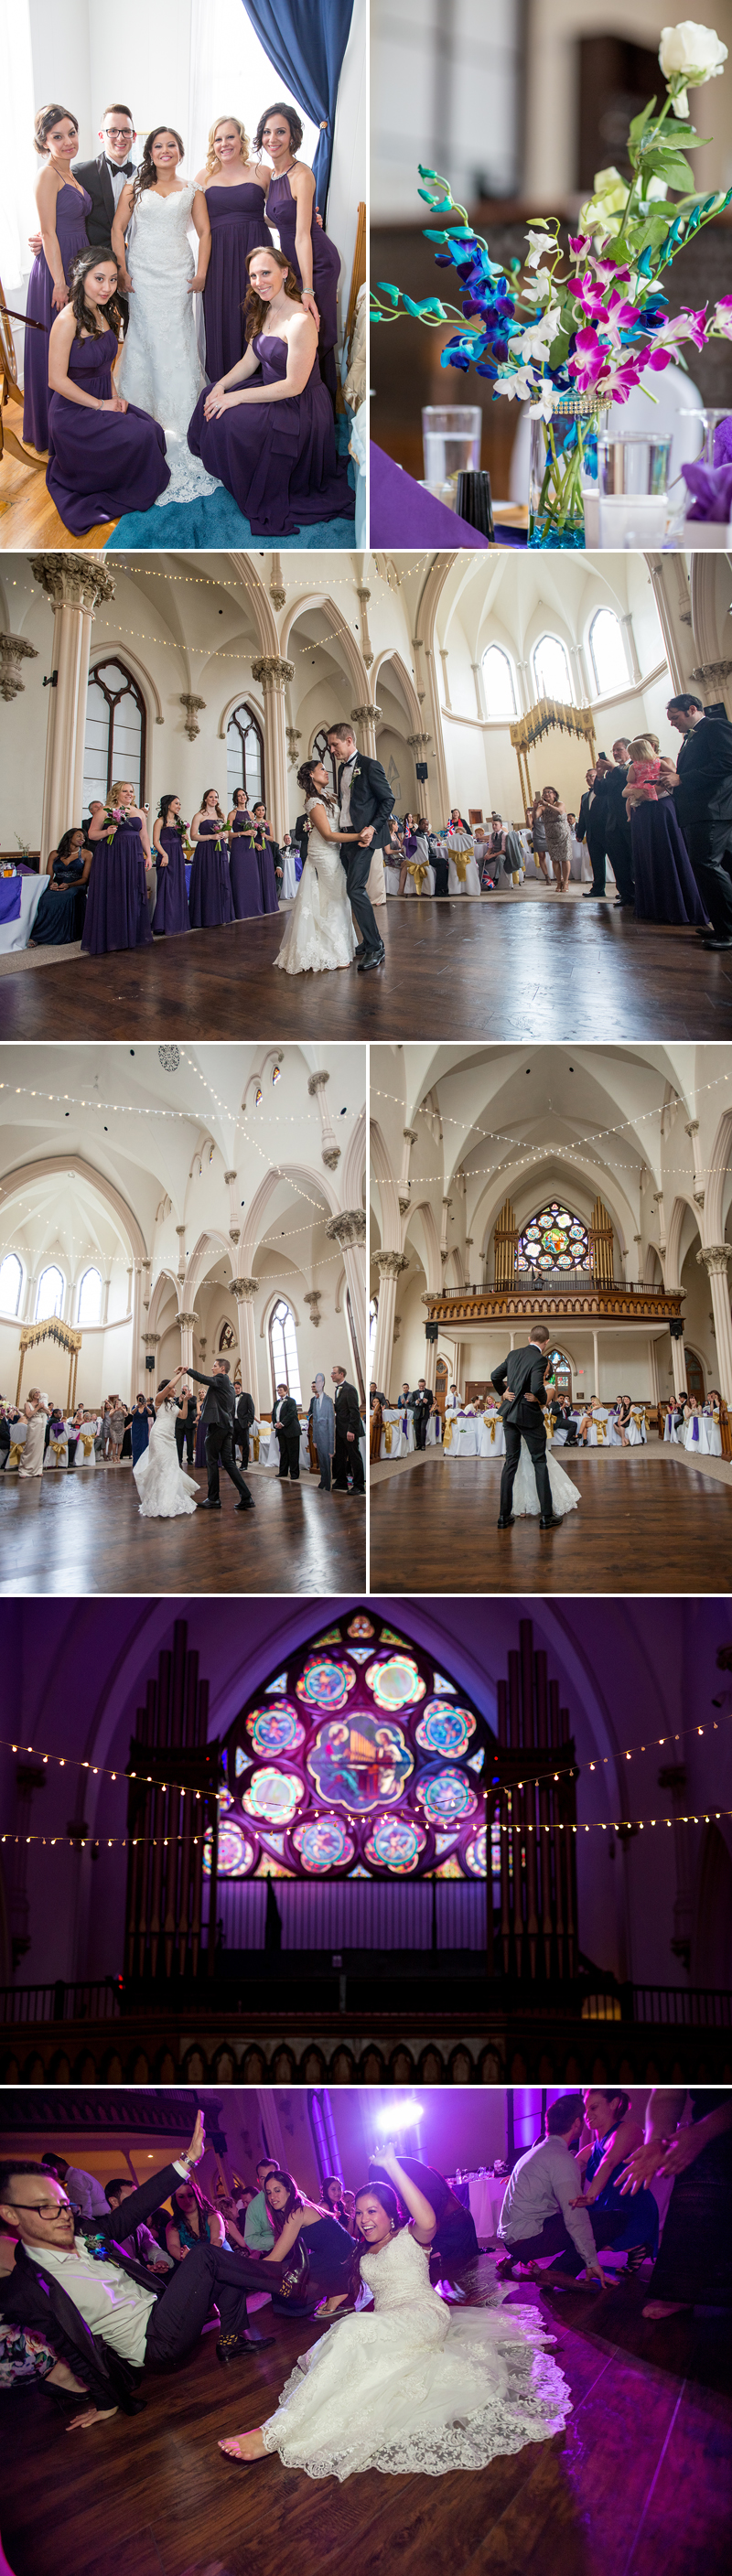 03-agora-grand-wedding-rene-roy.jpg